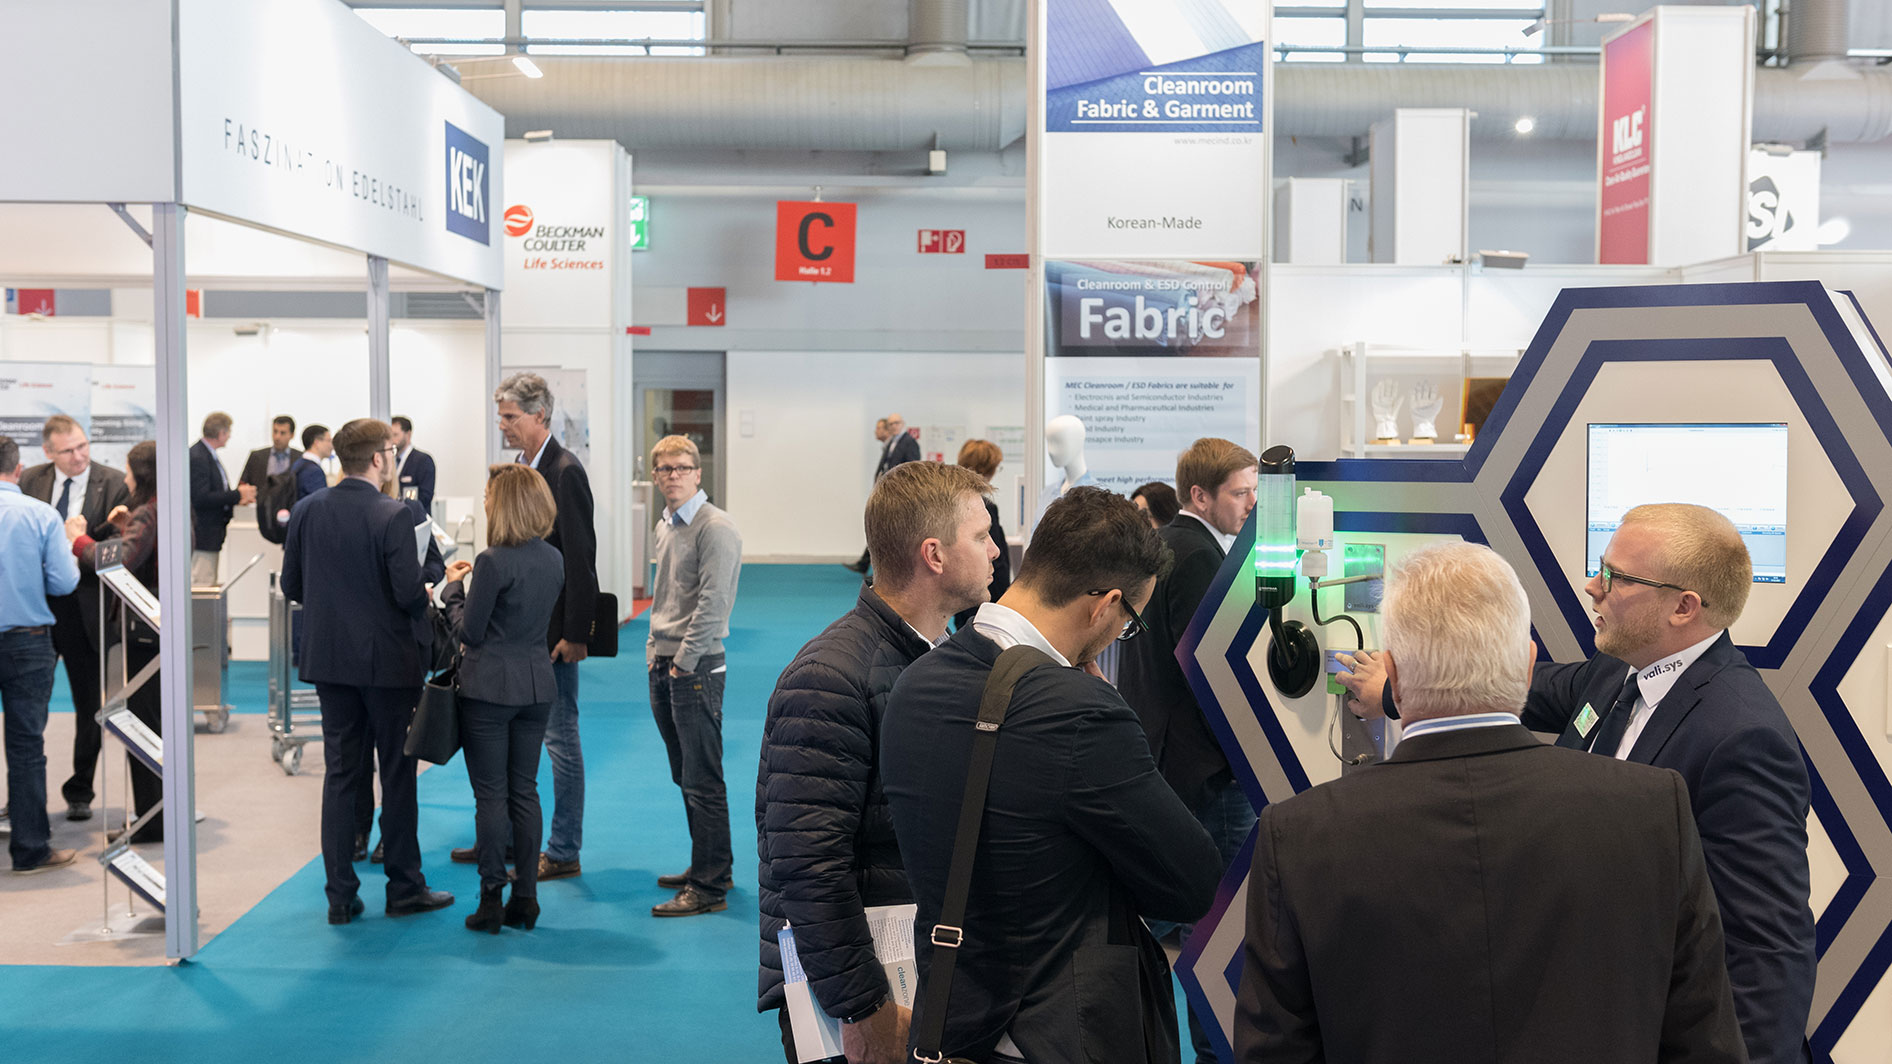 Cleanzone Information For Exhibitors Registered Electrical Worker And Trade 19 20112019 Frankfurt Am Main Tickets Registration